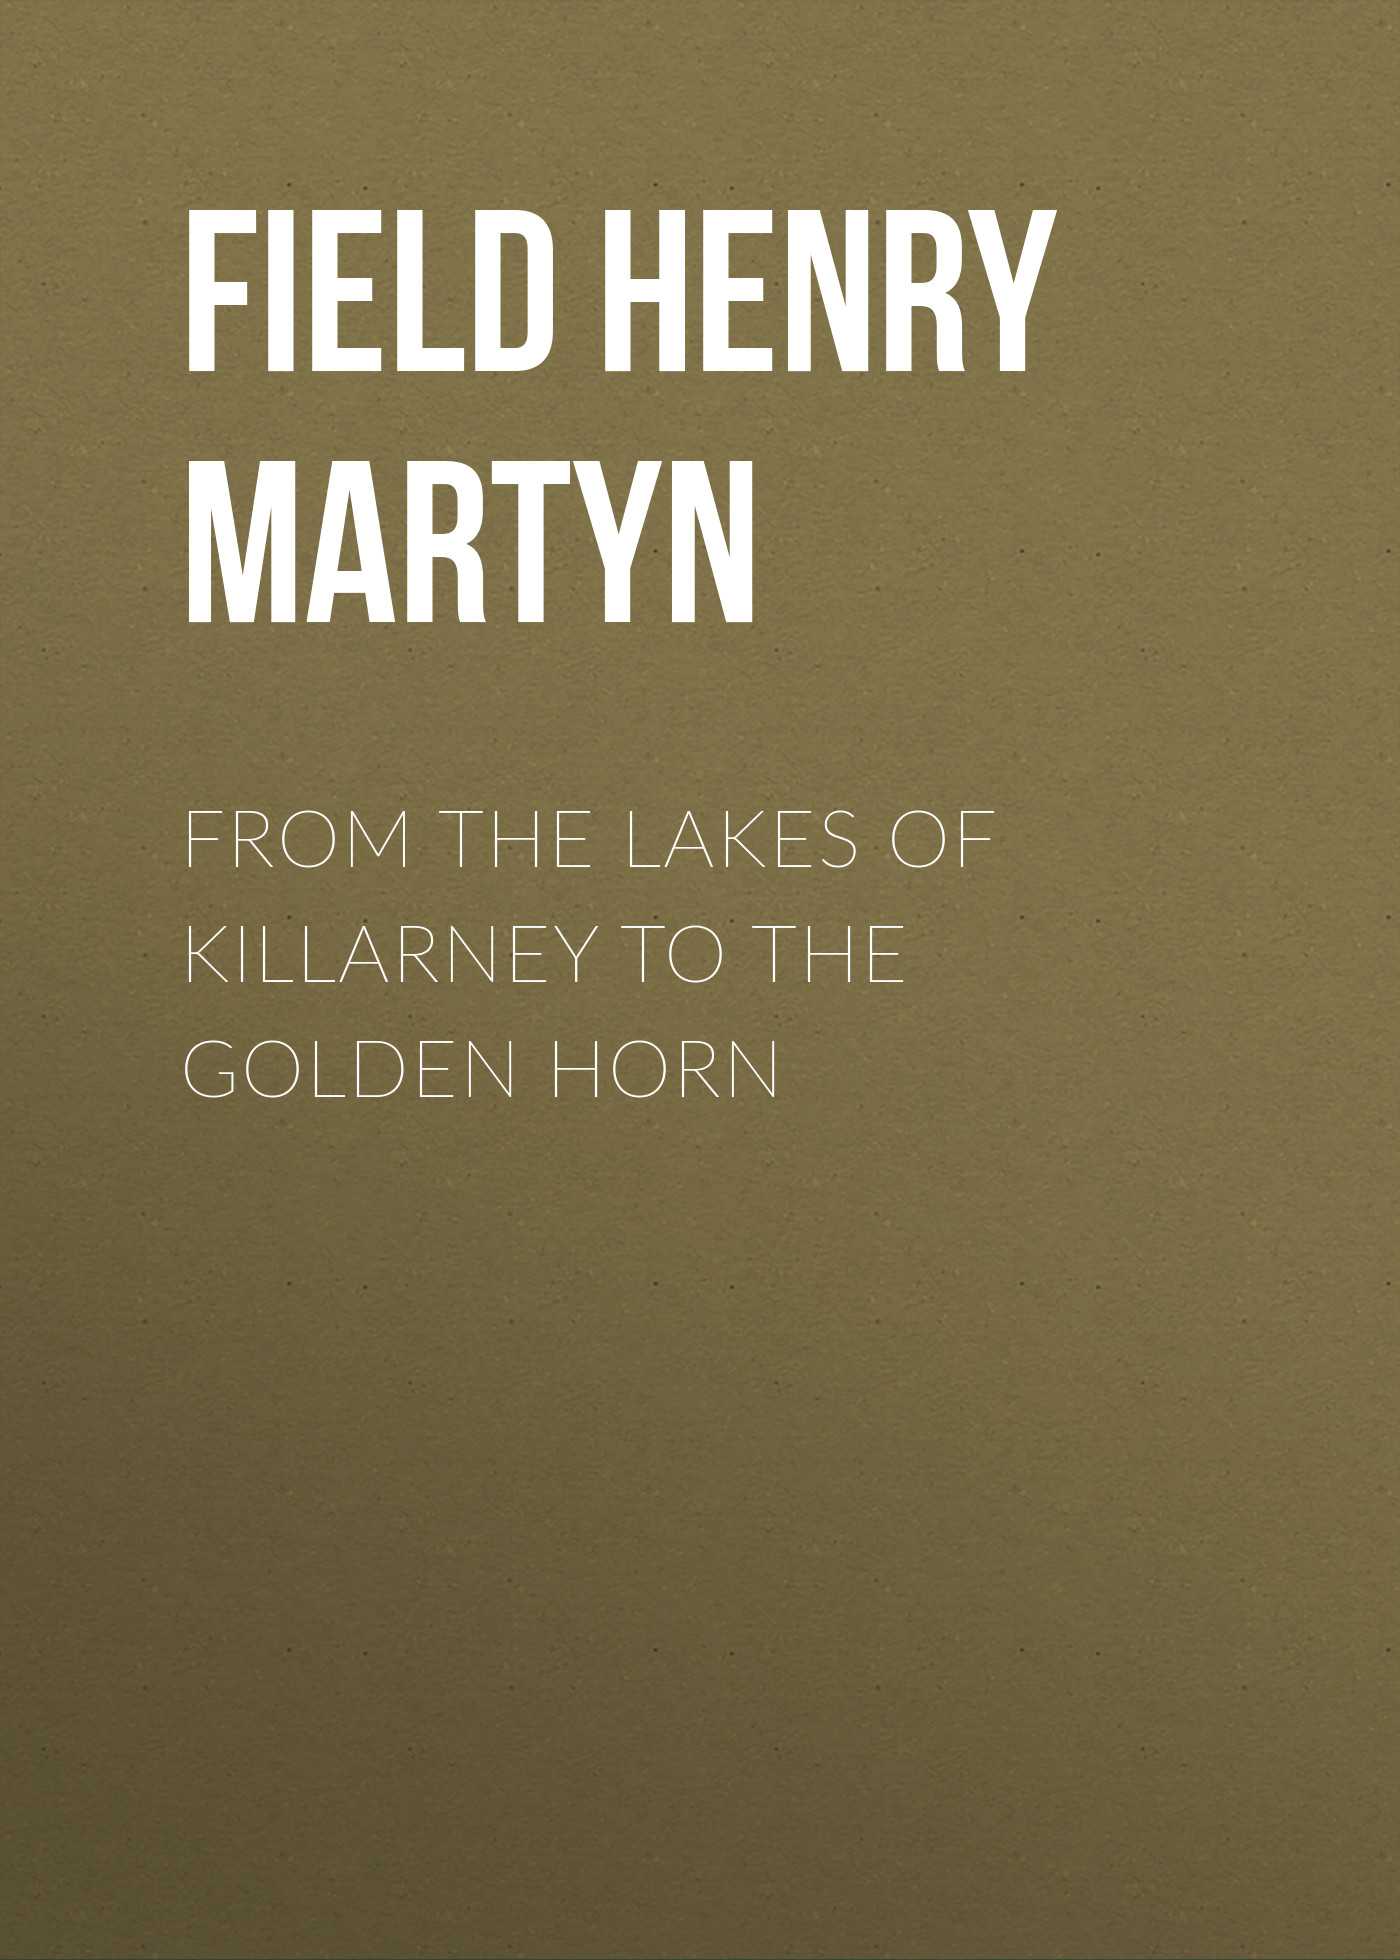 Field Henry Martyn From the Lakes of Killarney to the Golden Horn